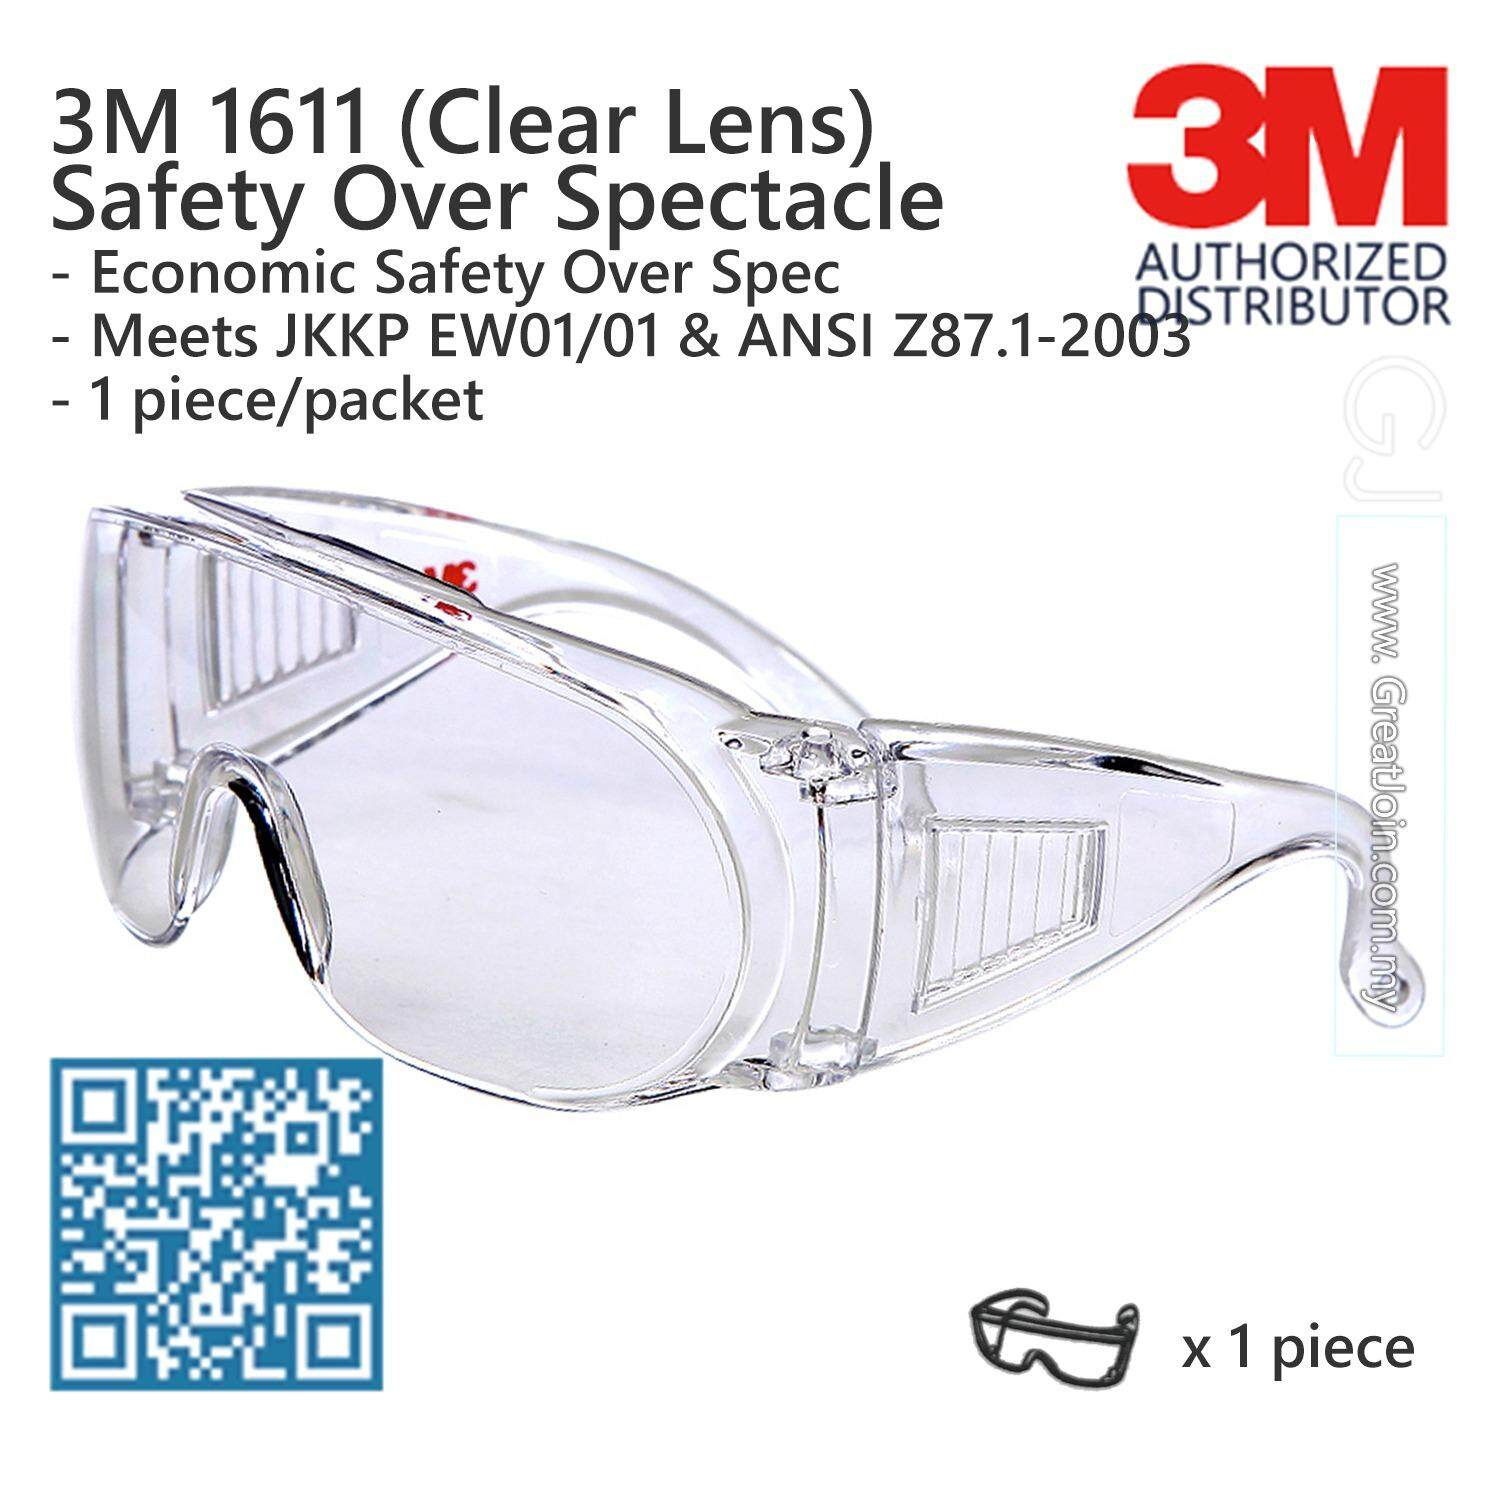 3M 1611 Safety Evewear  Safety Glasses  Over Spectacle  Visitor Specs   Clear  db494cbcb2